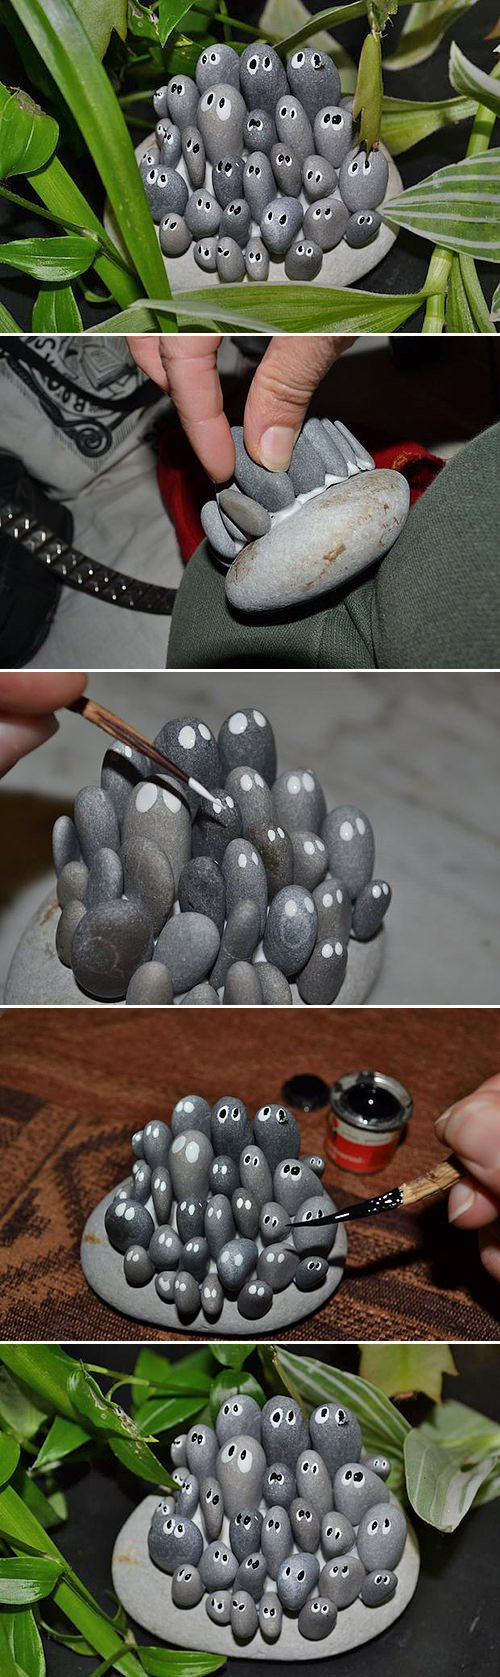 Diy garden trinkets the garden glove for Diy projects with rocks